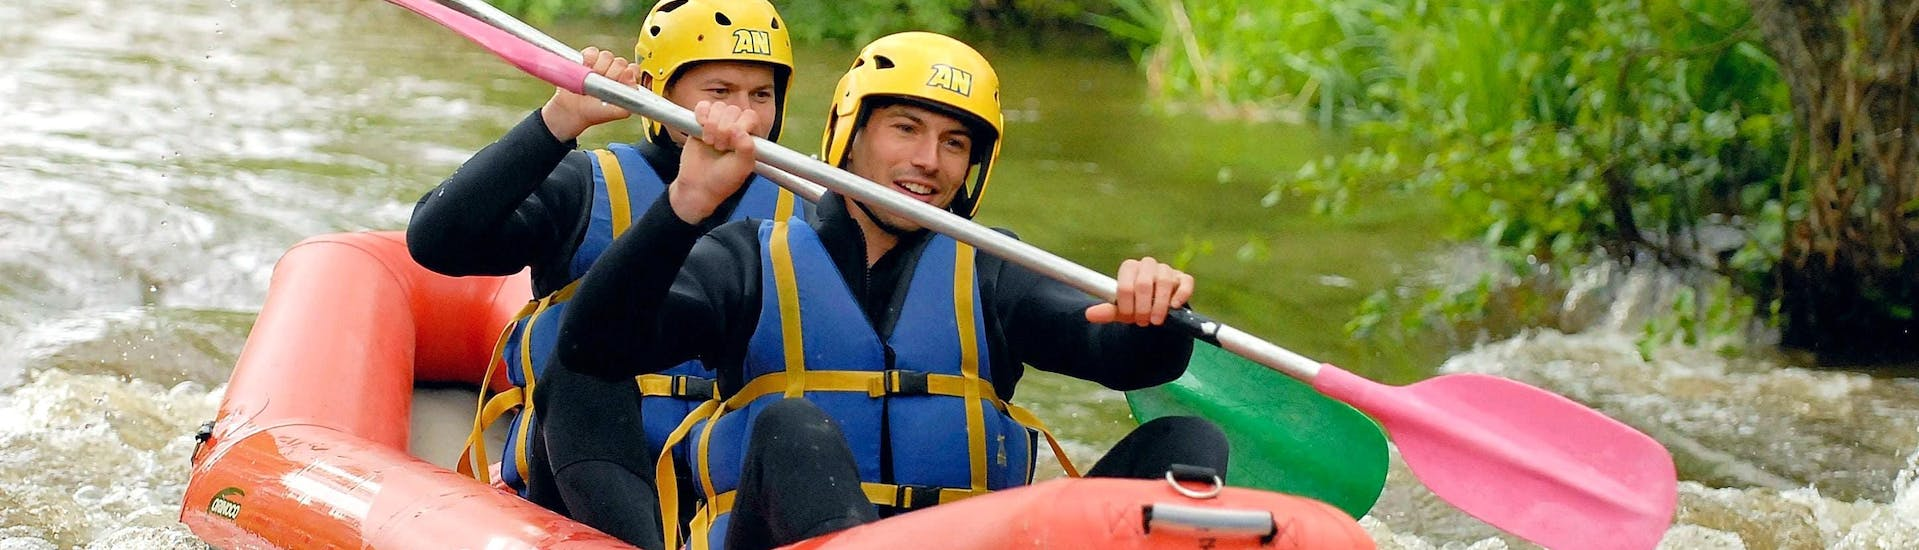 Two friends are paddling quietly on the river during their Rafting on Le Chalaux - Hot-Dog tour with AN Rafting Morvan.